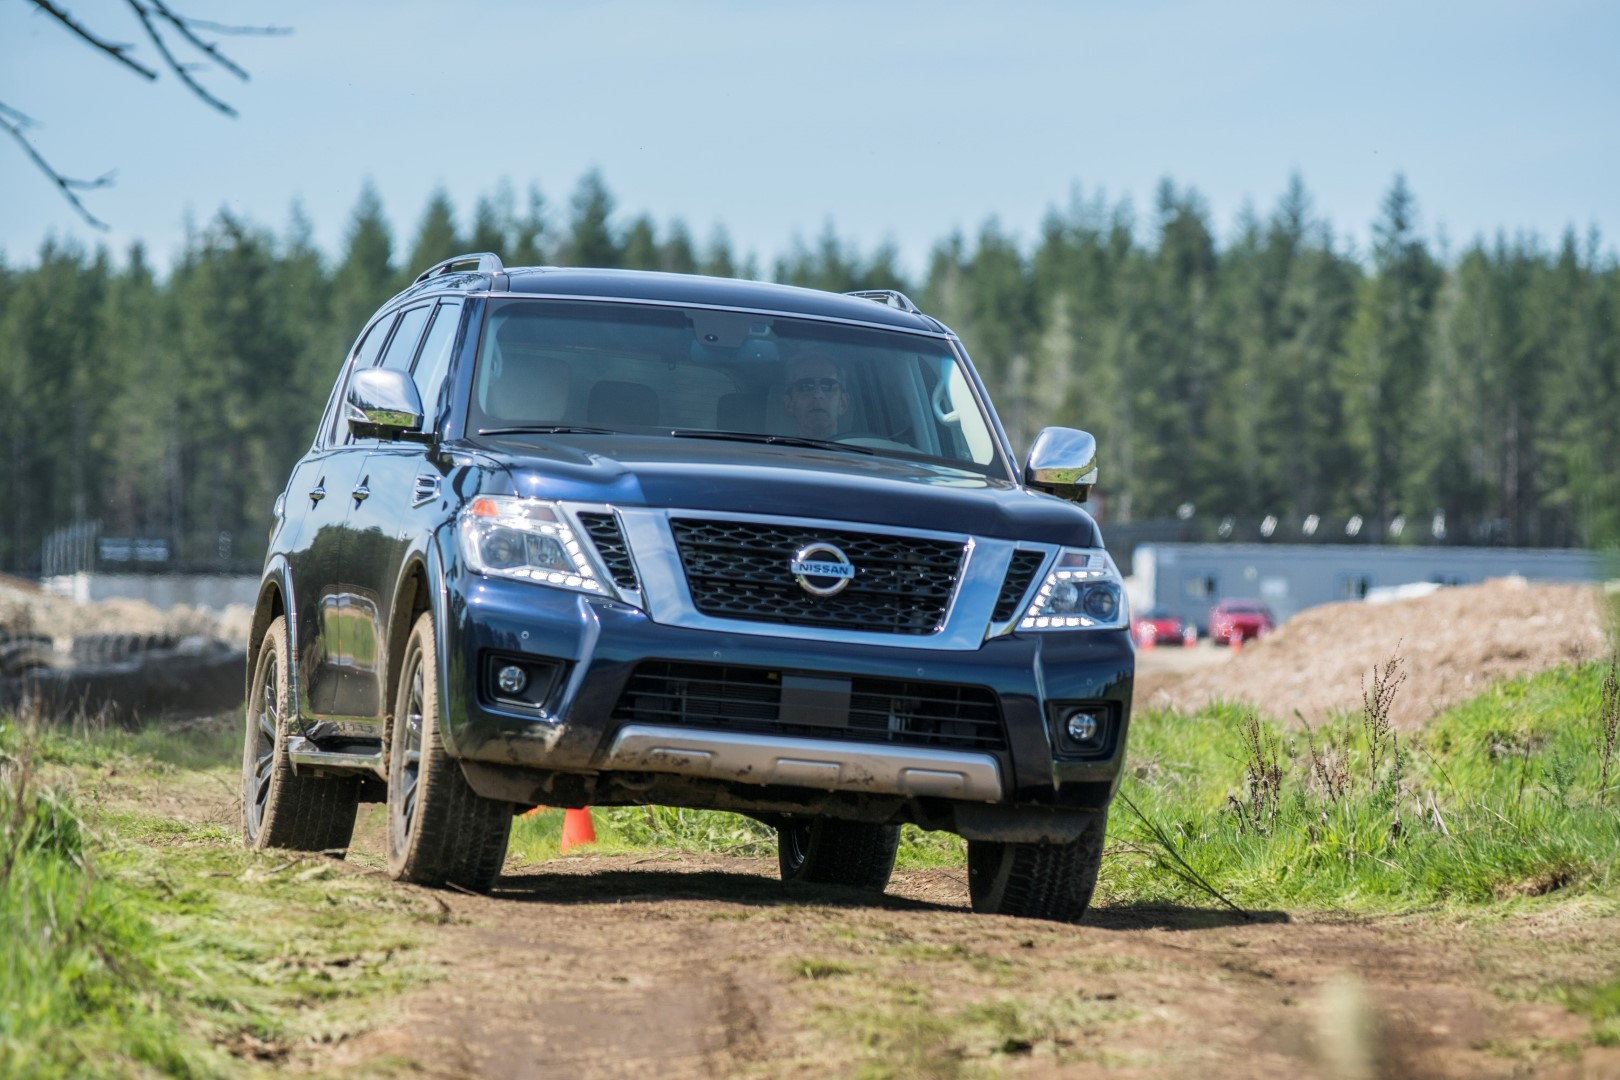 Nissan Armada off road